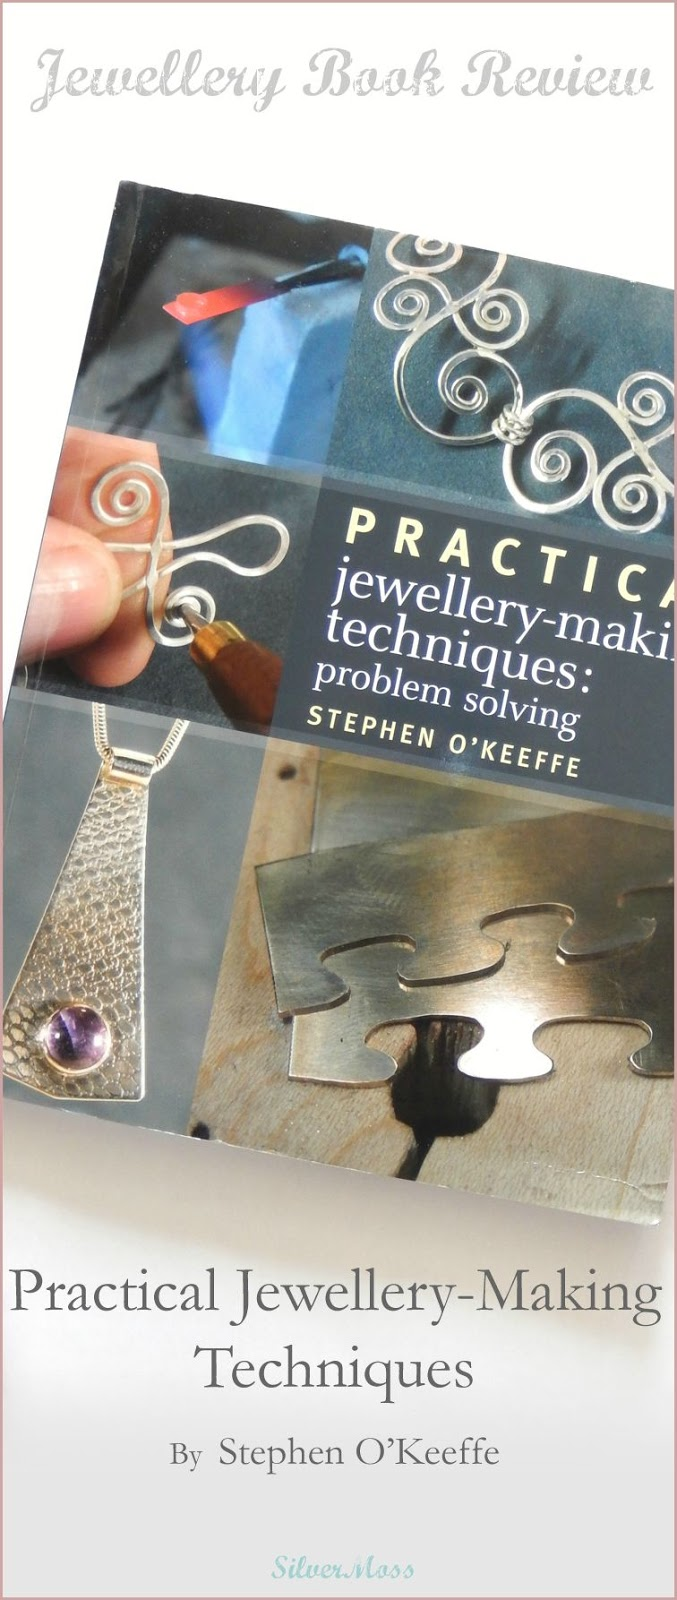 Book Review by SilverMoss - Practical Jewellery Making Techniques